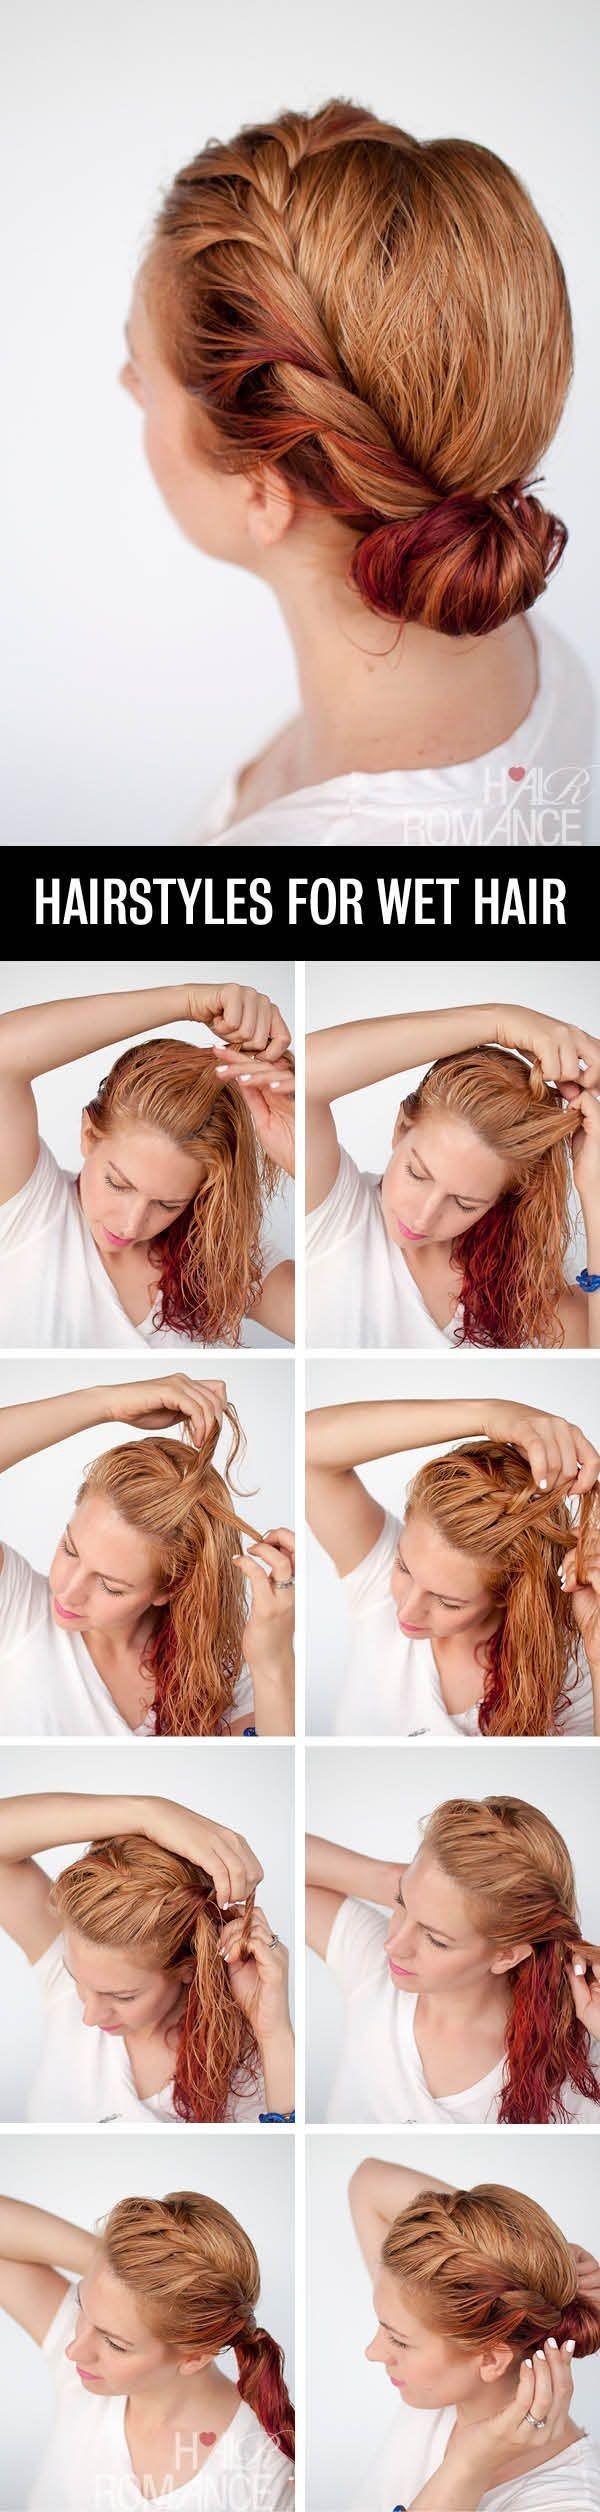 Best 25+ Quick hairstyles ideas on Pinterest | Quick easy ...